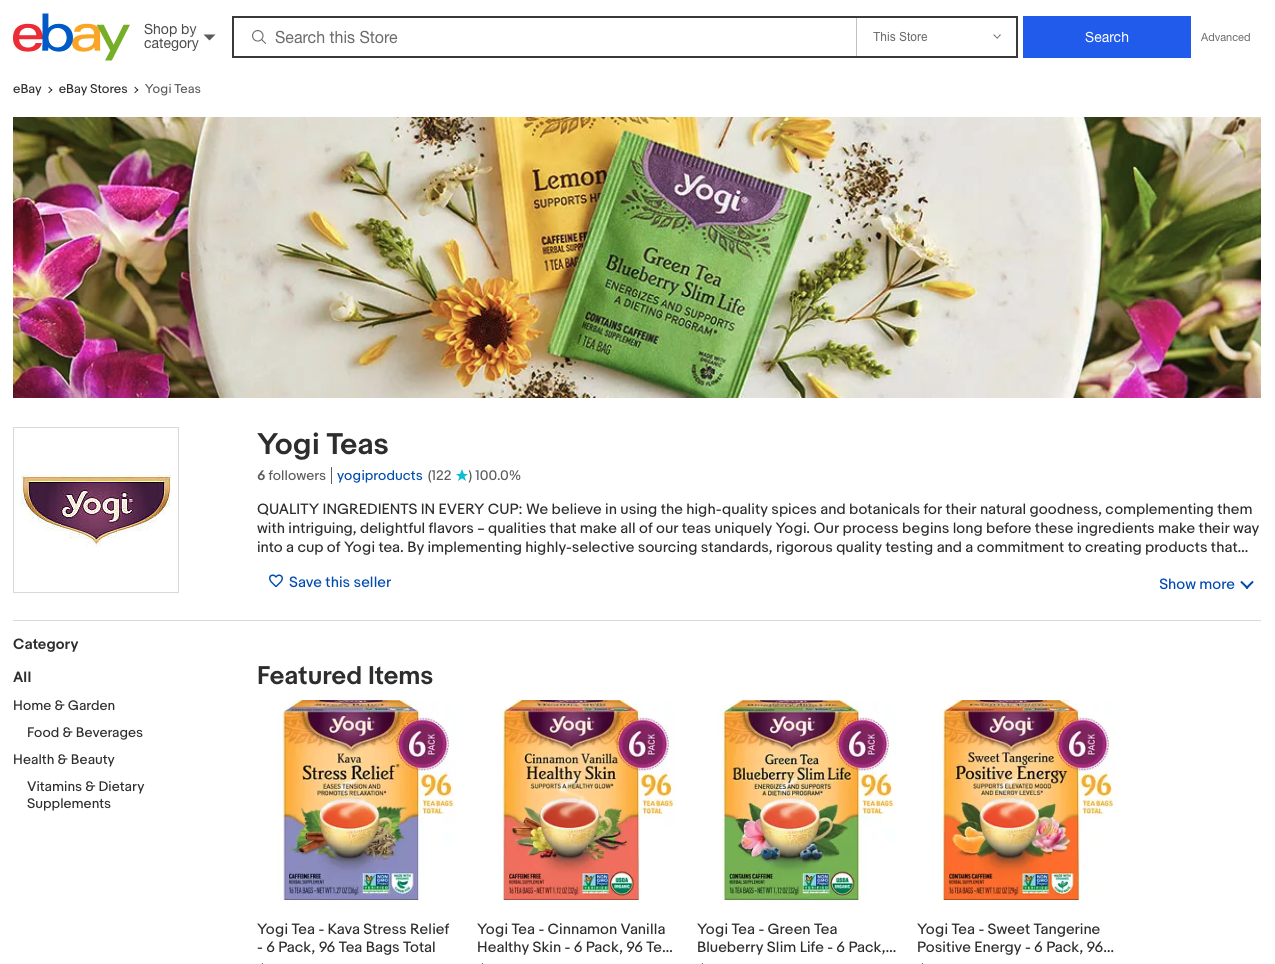 eBay offers customized storefronts to brands, and Pattern's eBay experts helped our brand Yogi Tea create a great product storefront on eBay.